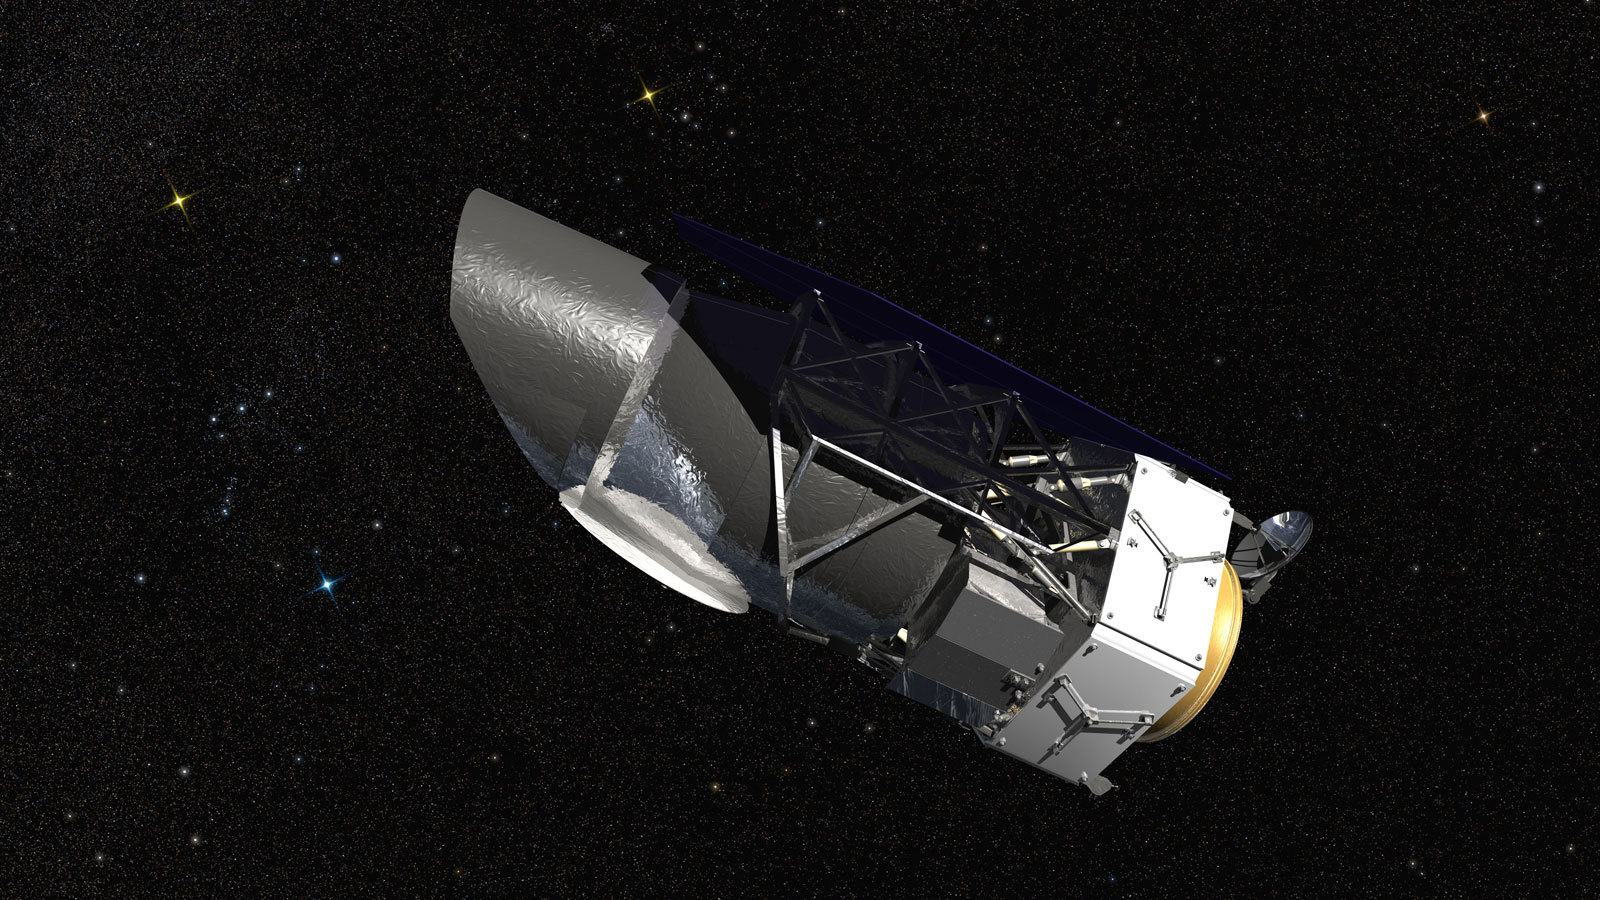 WFIRST, the Wide Field Infrared Survey Telescope, is shown here in an artist's rendering. It will carry a Wide Field Instrument to provide astronomers with Hubble-quality images covering large swaths of the sky, and enabling several studies of cosmic evolution. Image credit: NASA/Goddard Space Flight Center/Conceptual Image Lab